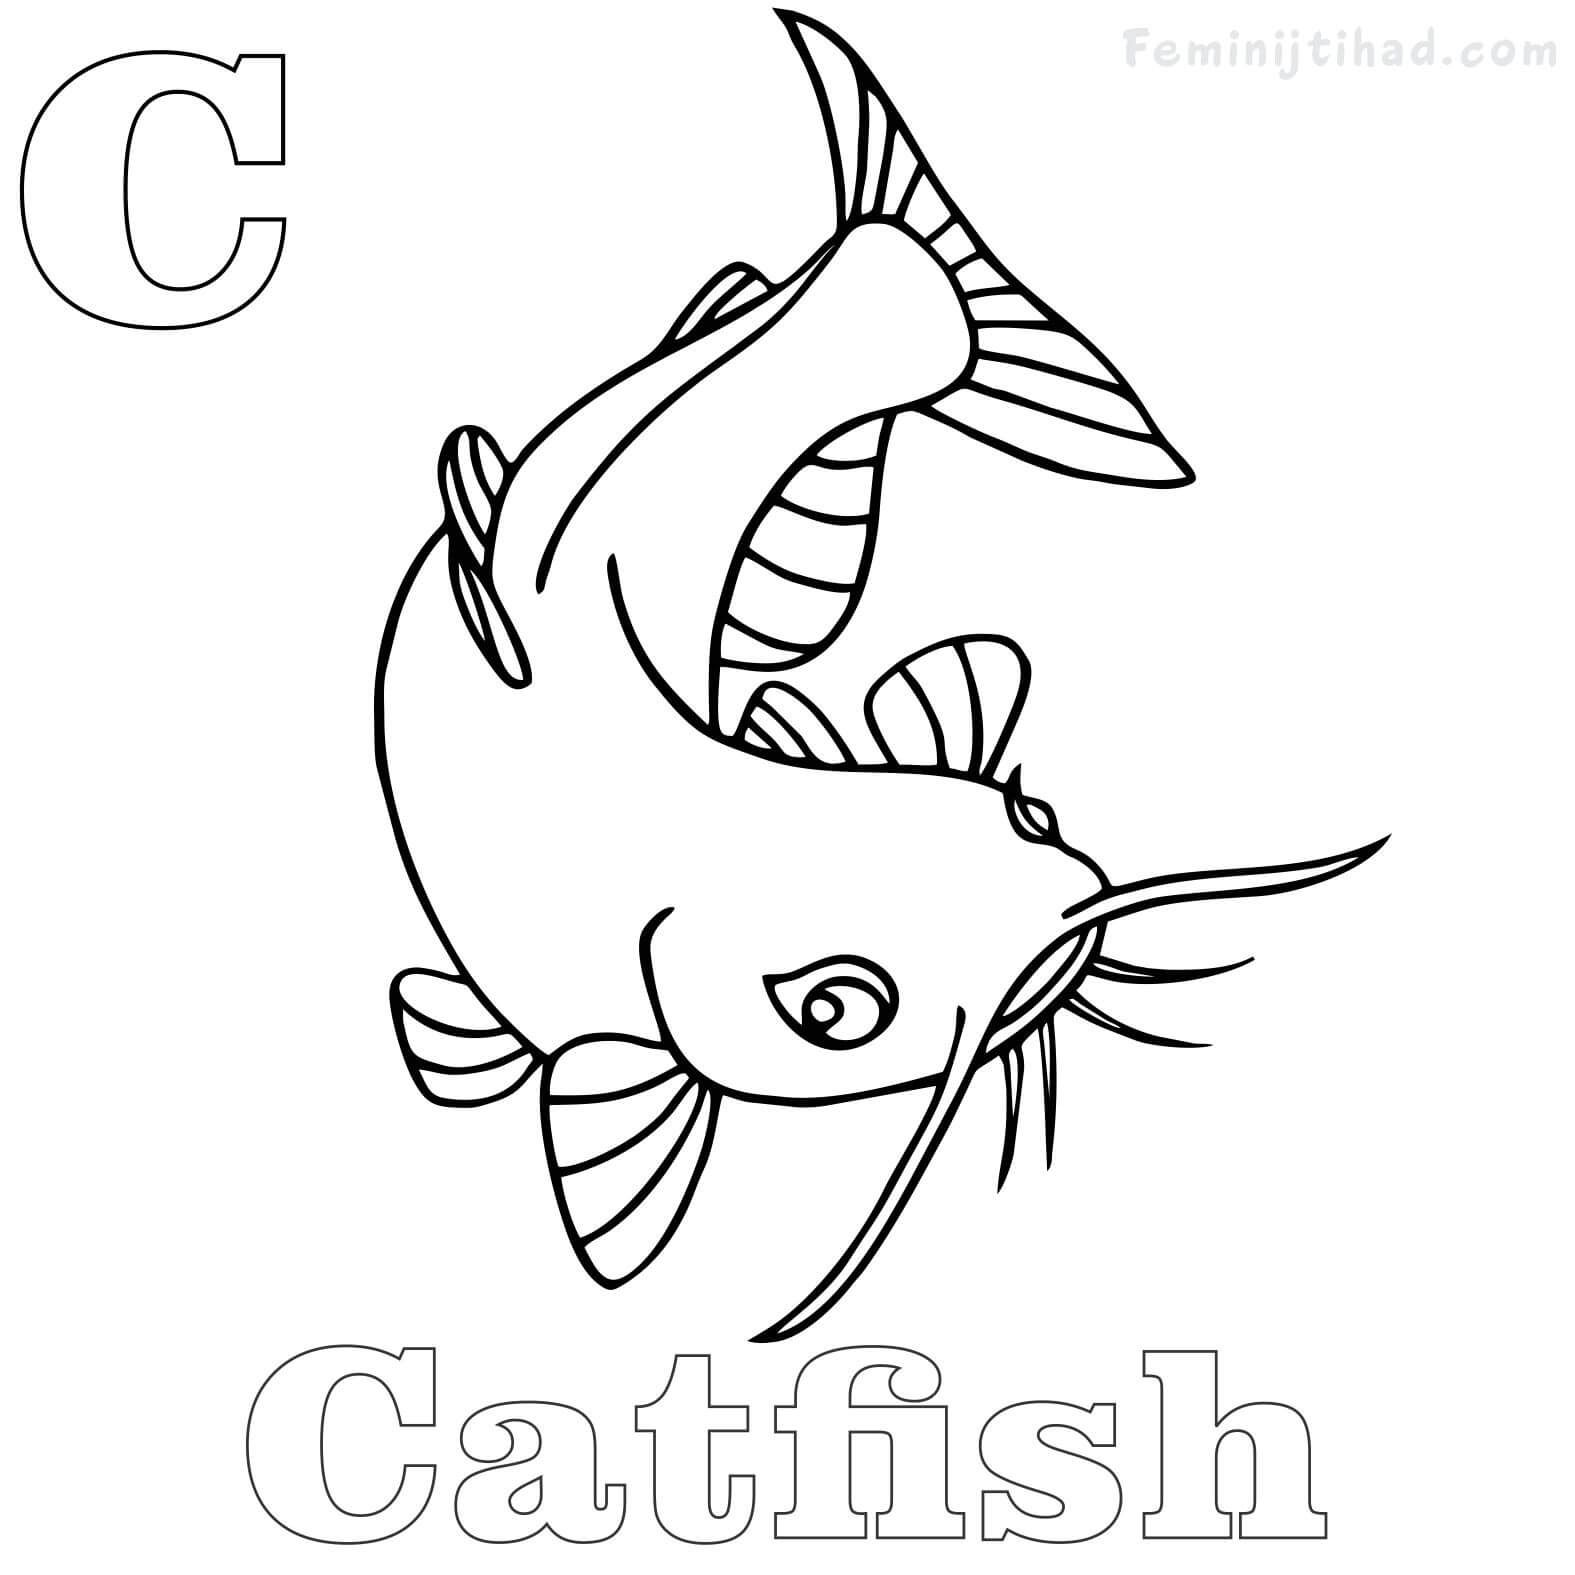 Catfish Coloring Pages Printable Free Pdf Free Coloring Sheets Coloring Book Pages Coloring Books Coloring Pages